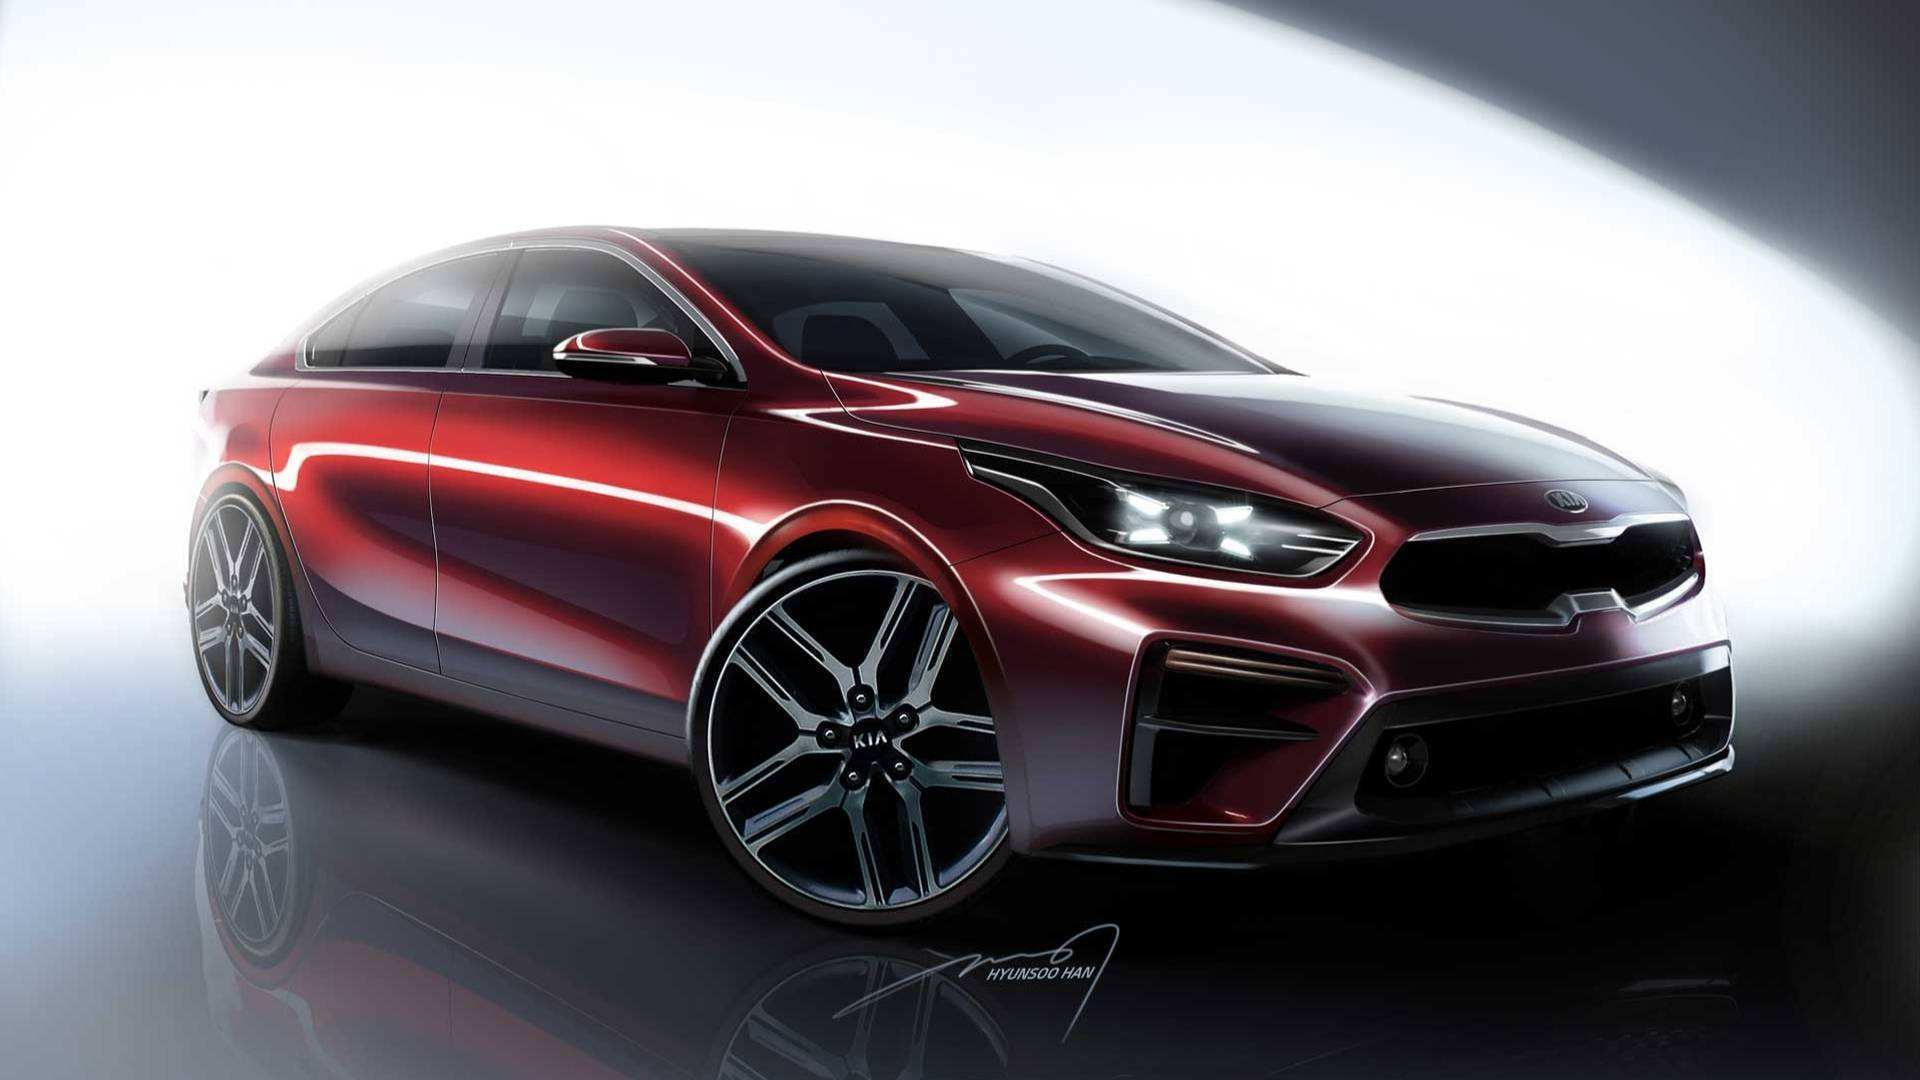 12 Gallery of New 2019 Kia Pricing with New 2019 Kia